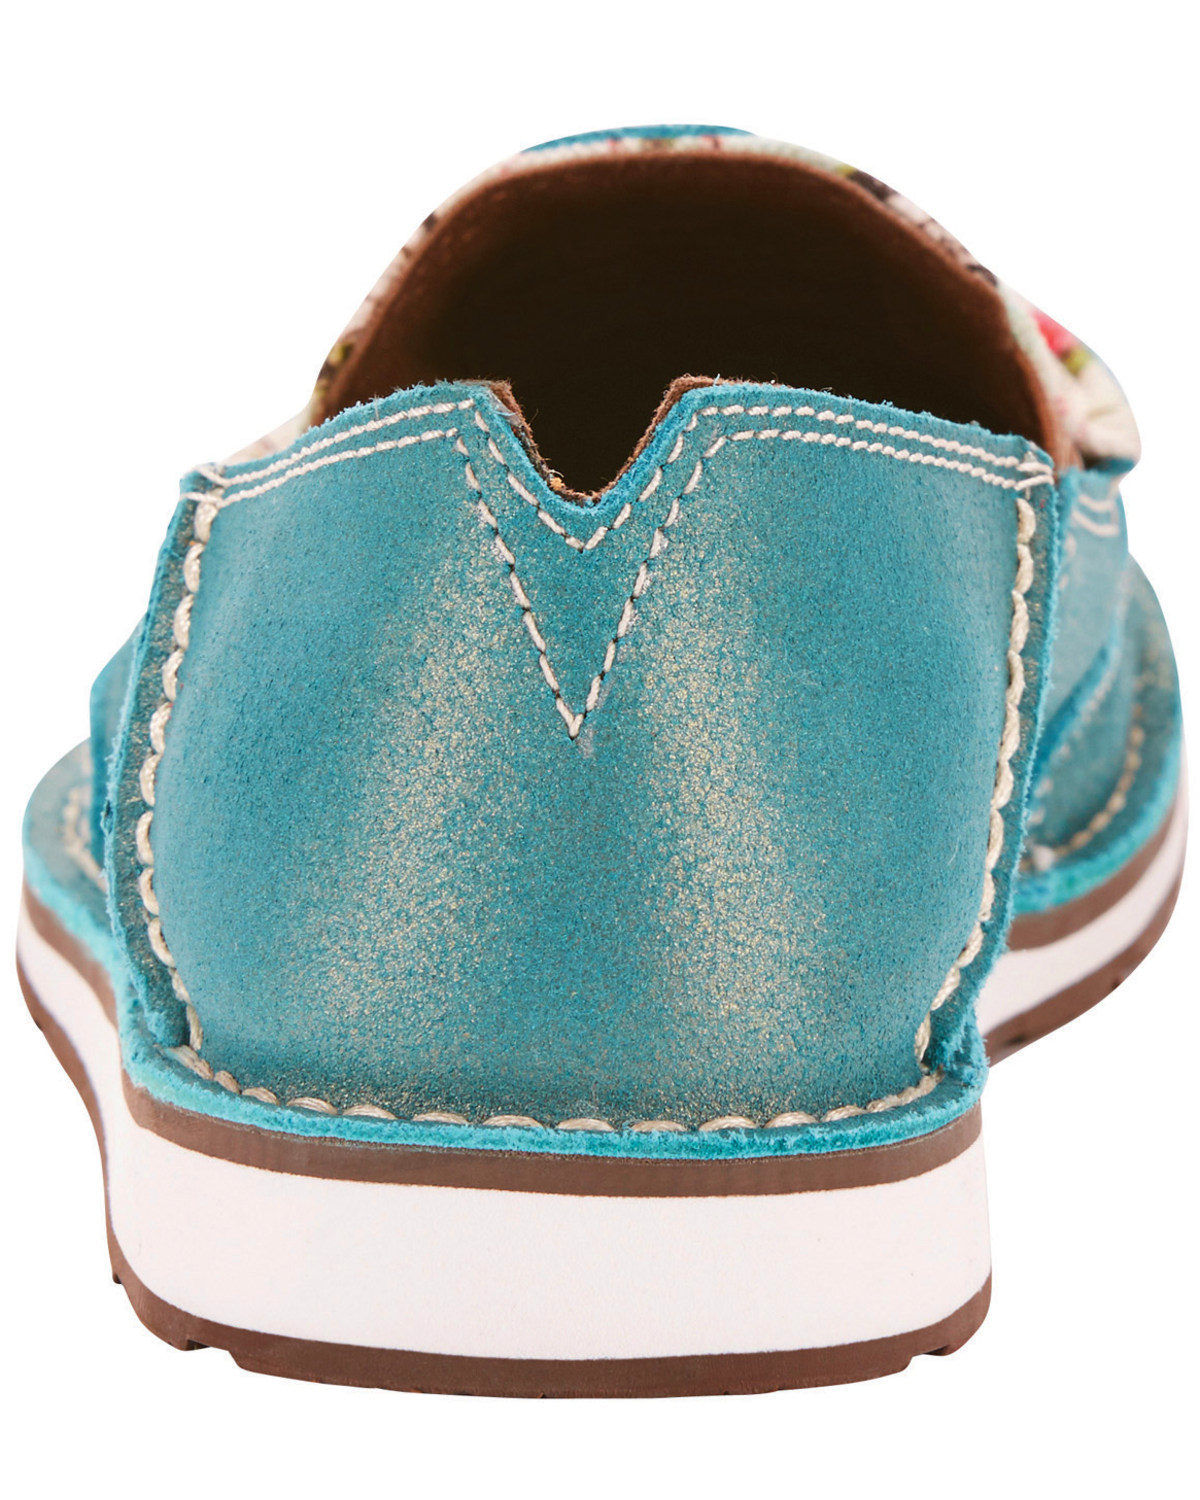 876cd68c529de Ariat Women's Turquoise Cruiser Shoes